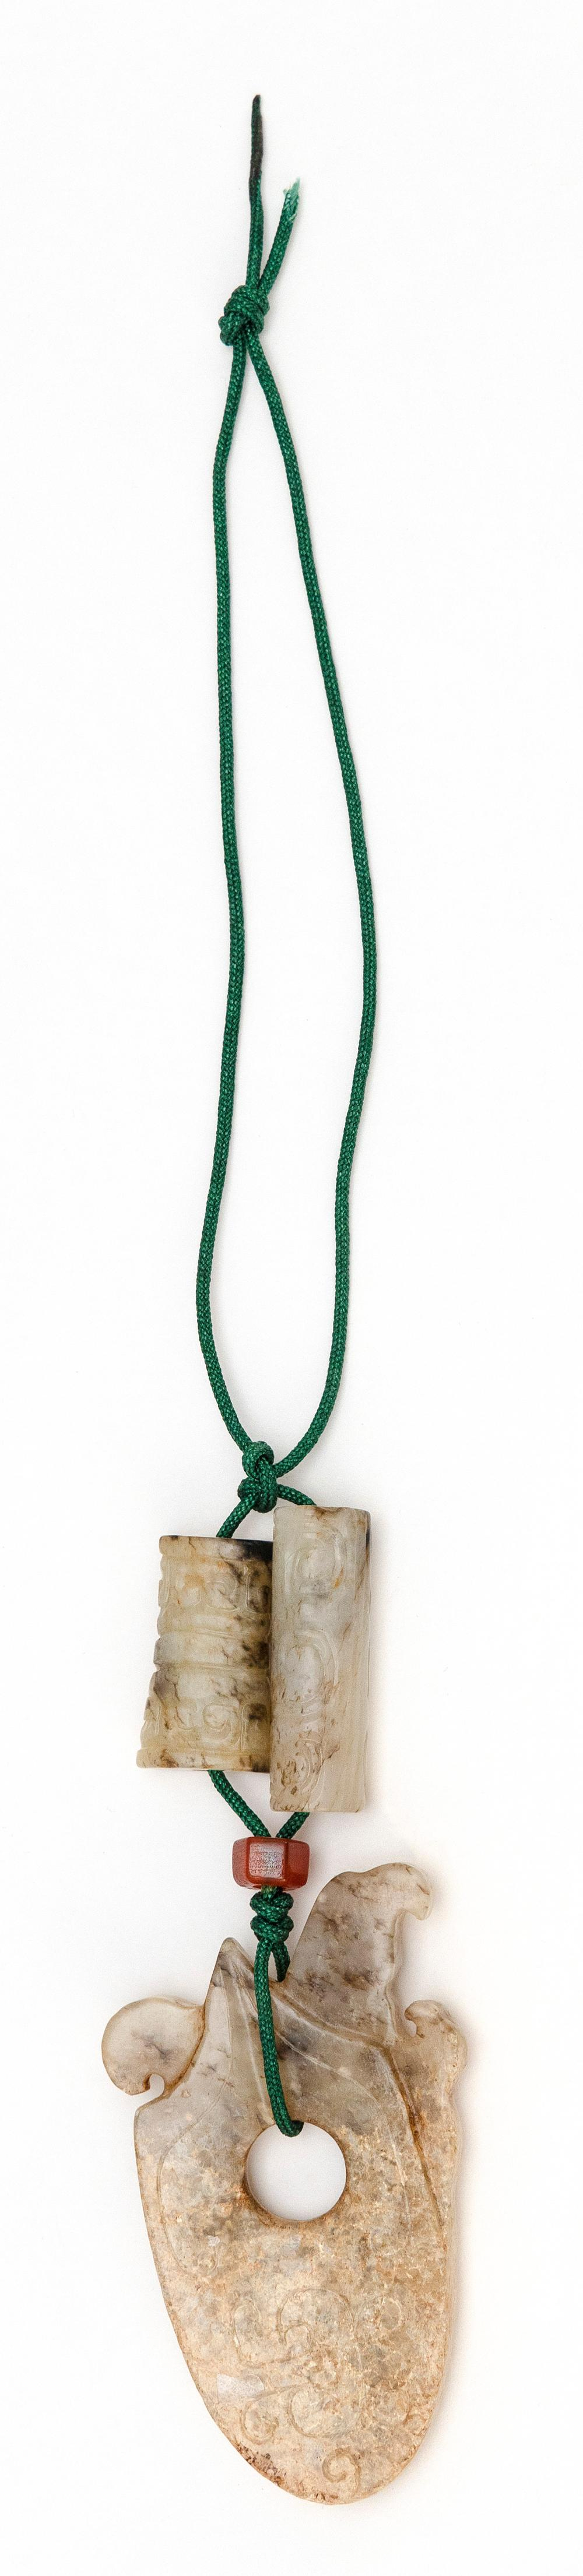 CHINESE GRAY JADE PENDANT WITH TWO BEADS Pendant in axe-head form with phoenix carving. Length 2.75